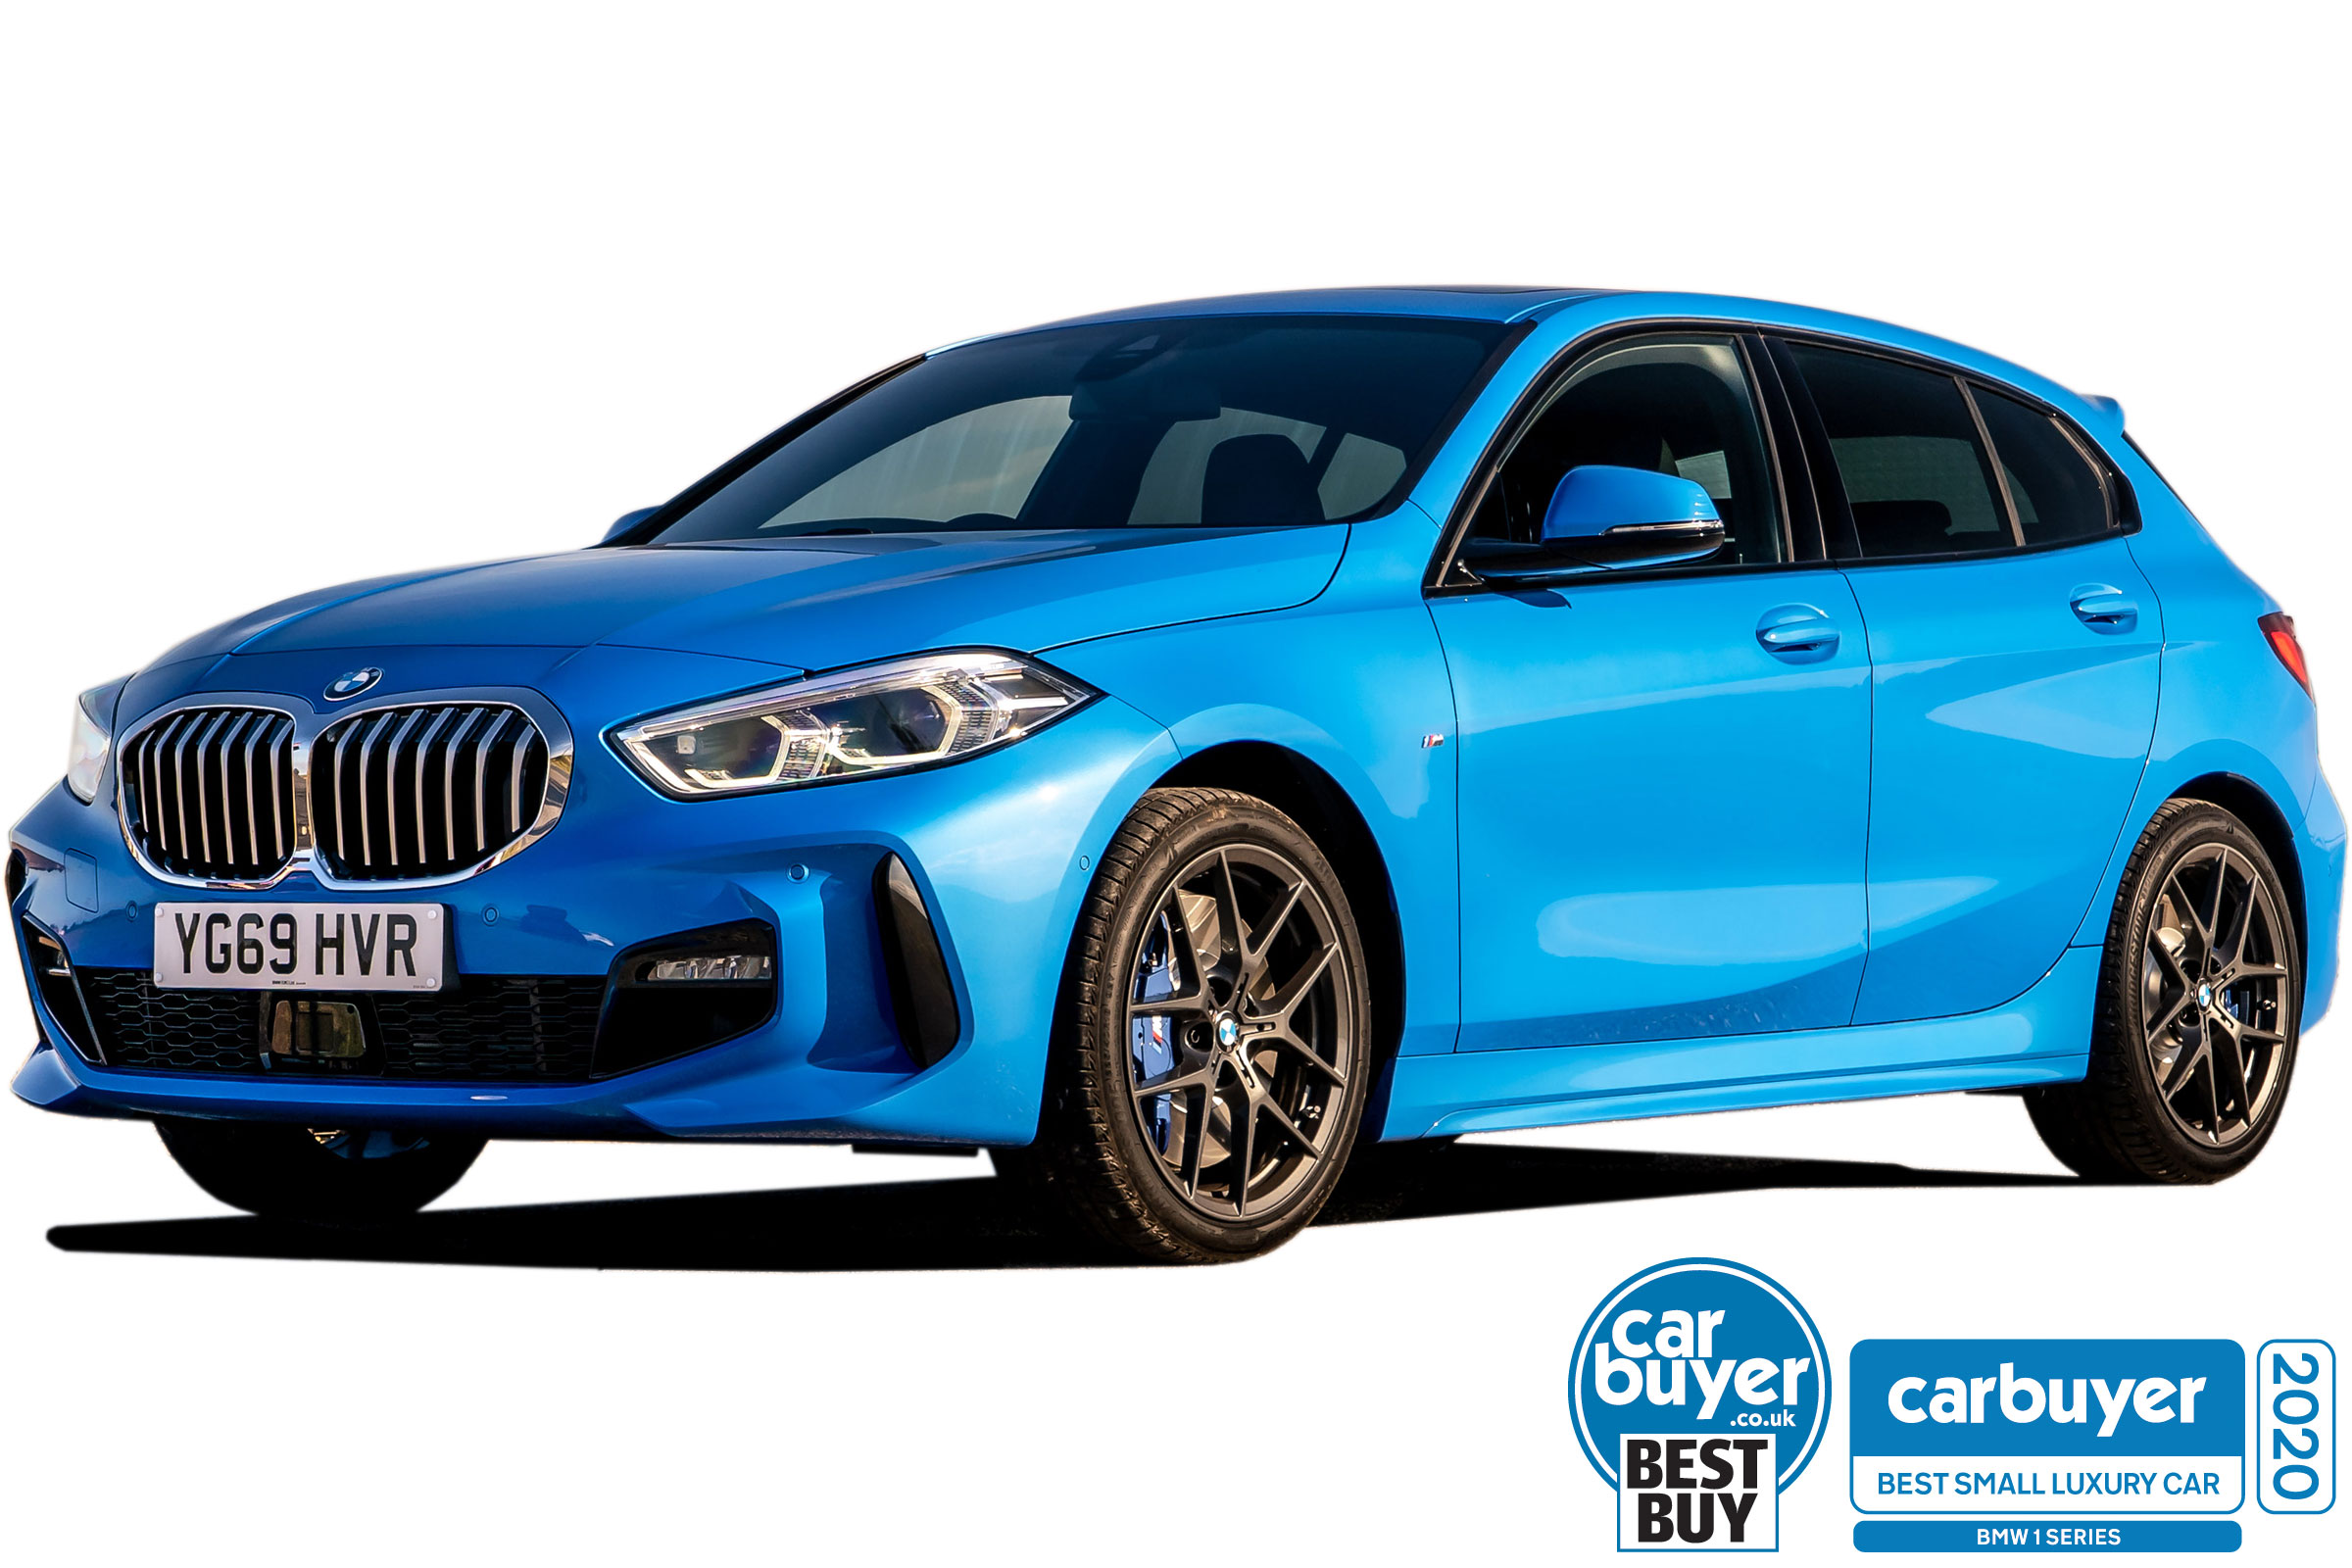 Bmw 1 Series Hatchback Engines Drive Performance 2020 Review Carbuyer